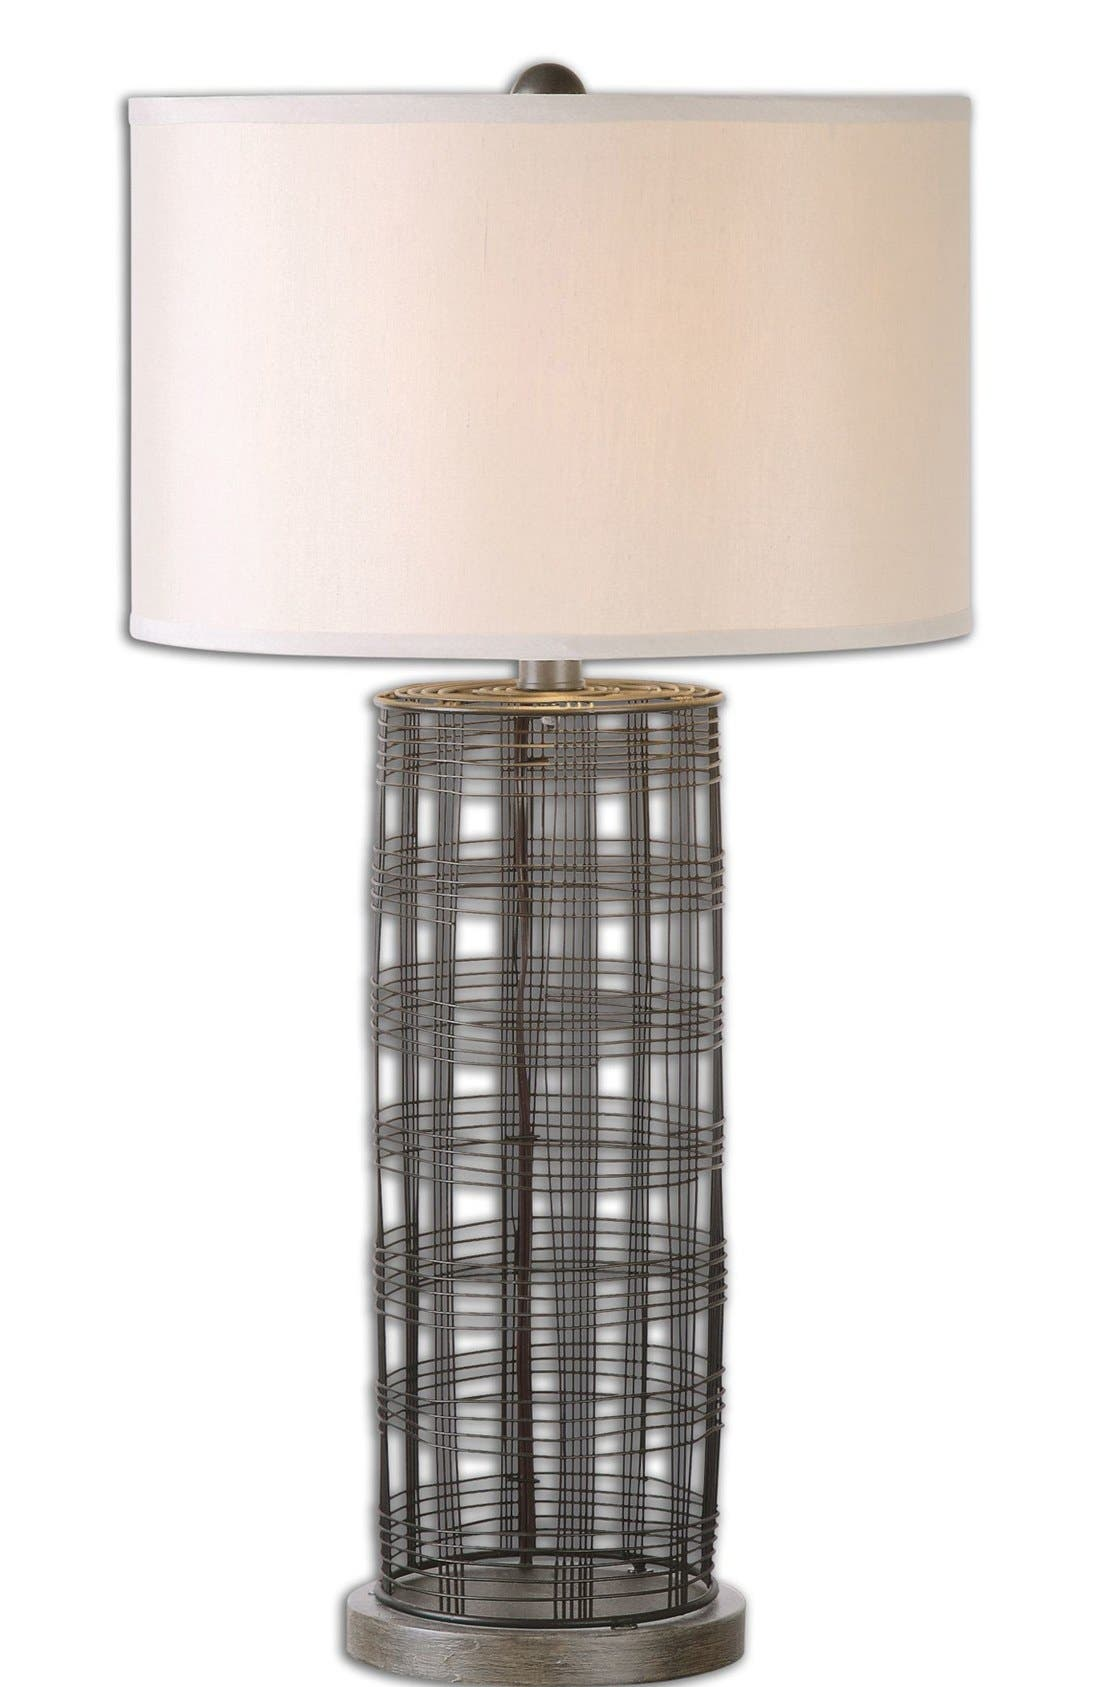 Main Image - Uttermost 'Engel' Wire Table Lamp